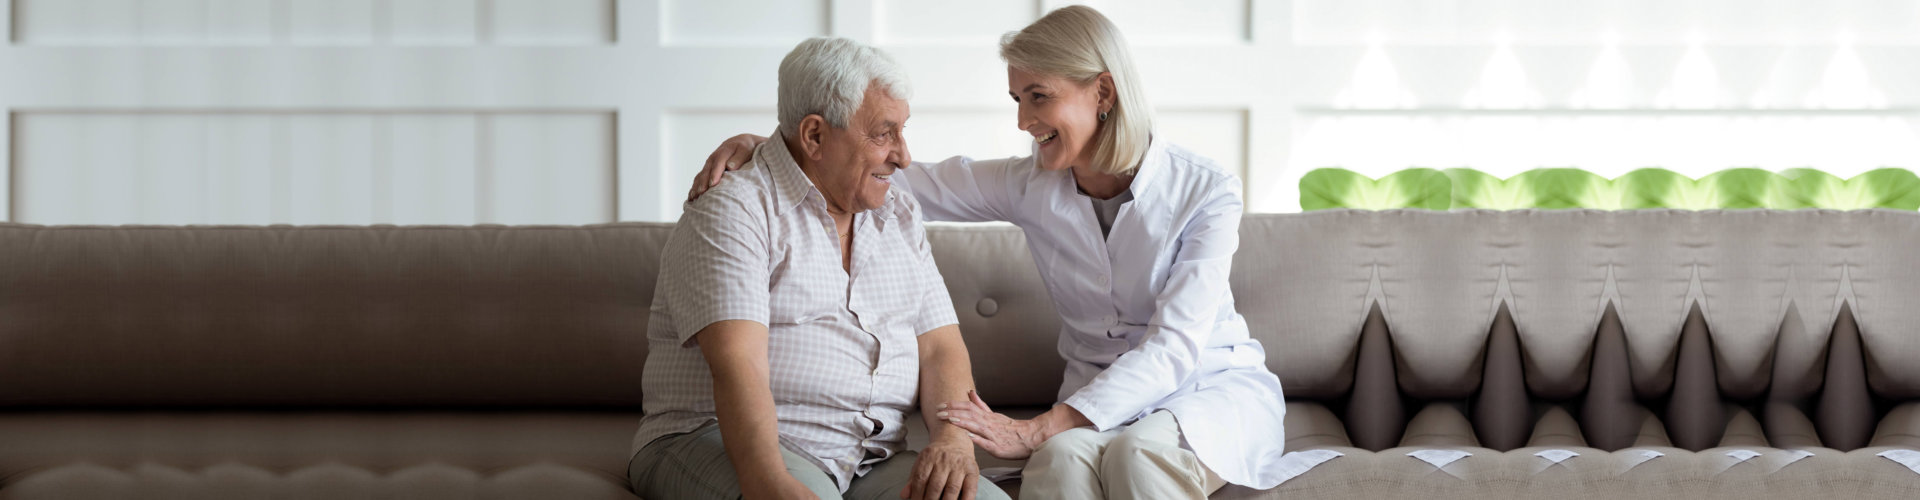 Friendly mature general practitioner communicating with senior patient, sitting together on sofa.